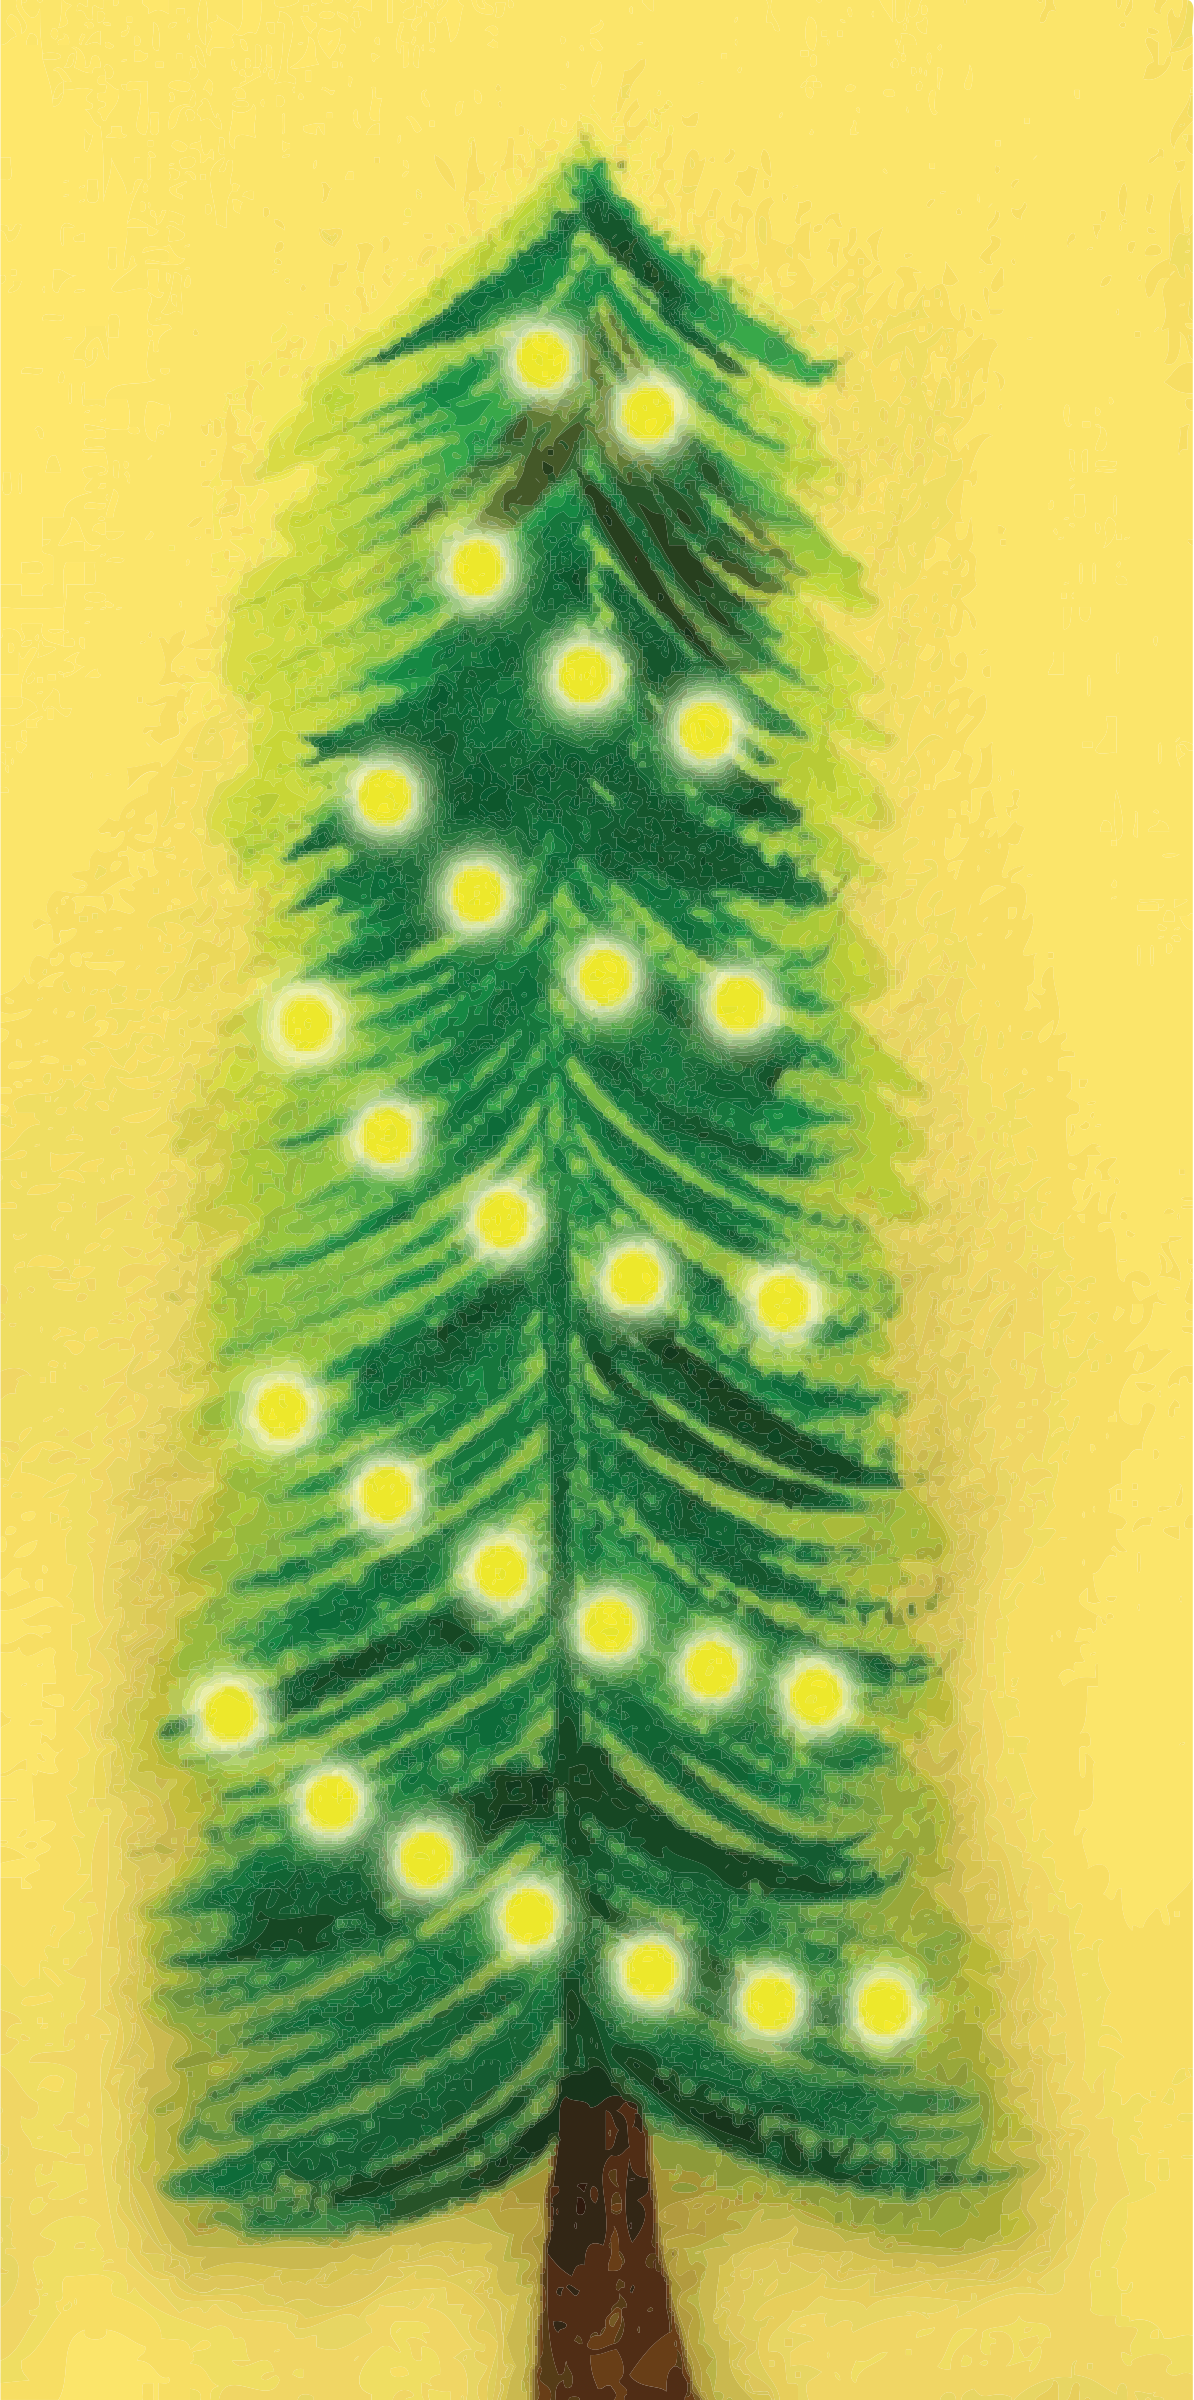 Remixed Christmas Tree Illuminated, traced. by oldifluff